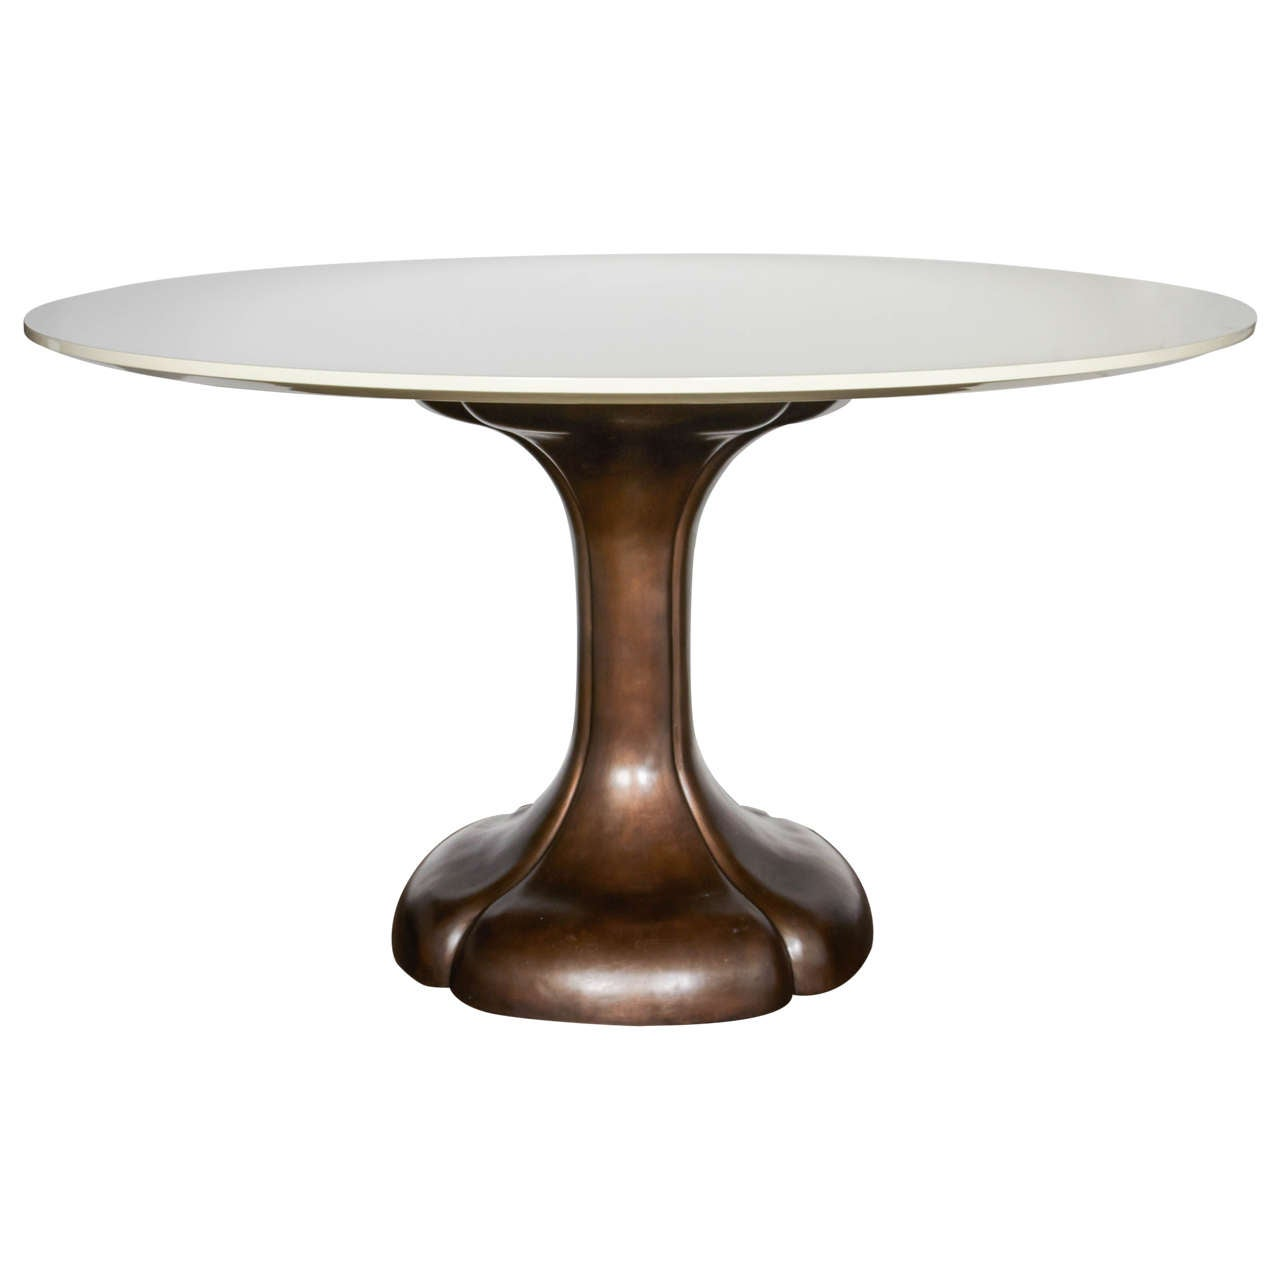 Art nouveau style round dining table with bronze pedestal for Pedestal table